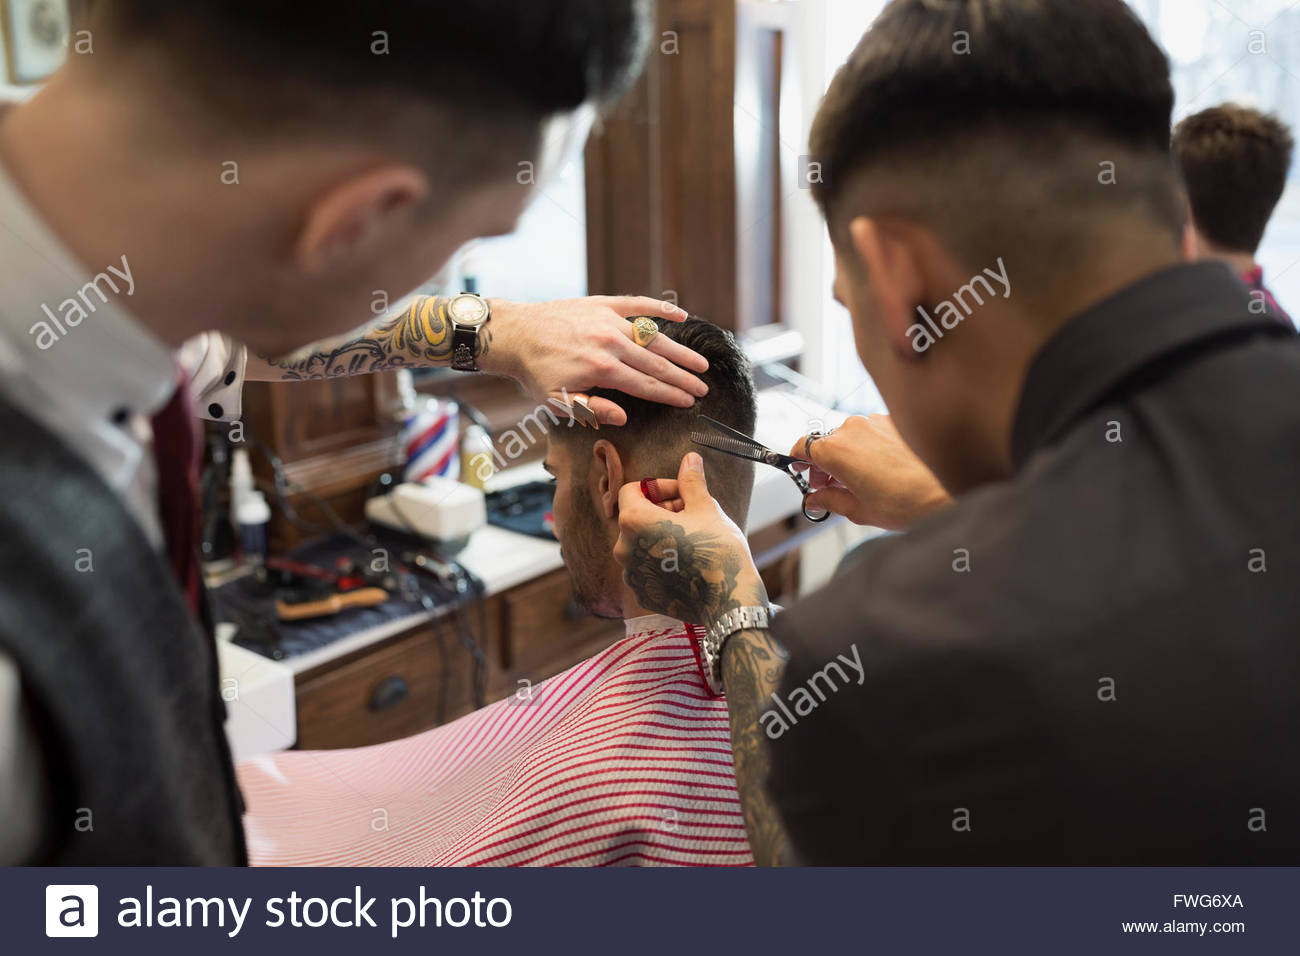 Barbers cutting man - Stock Image